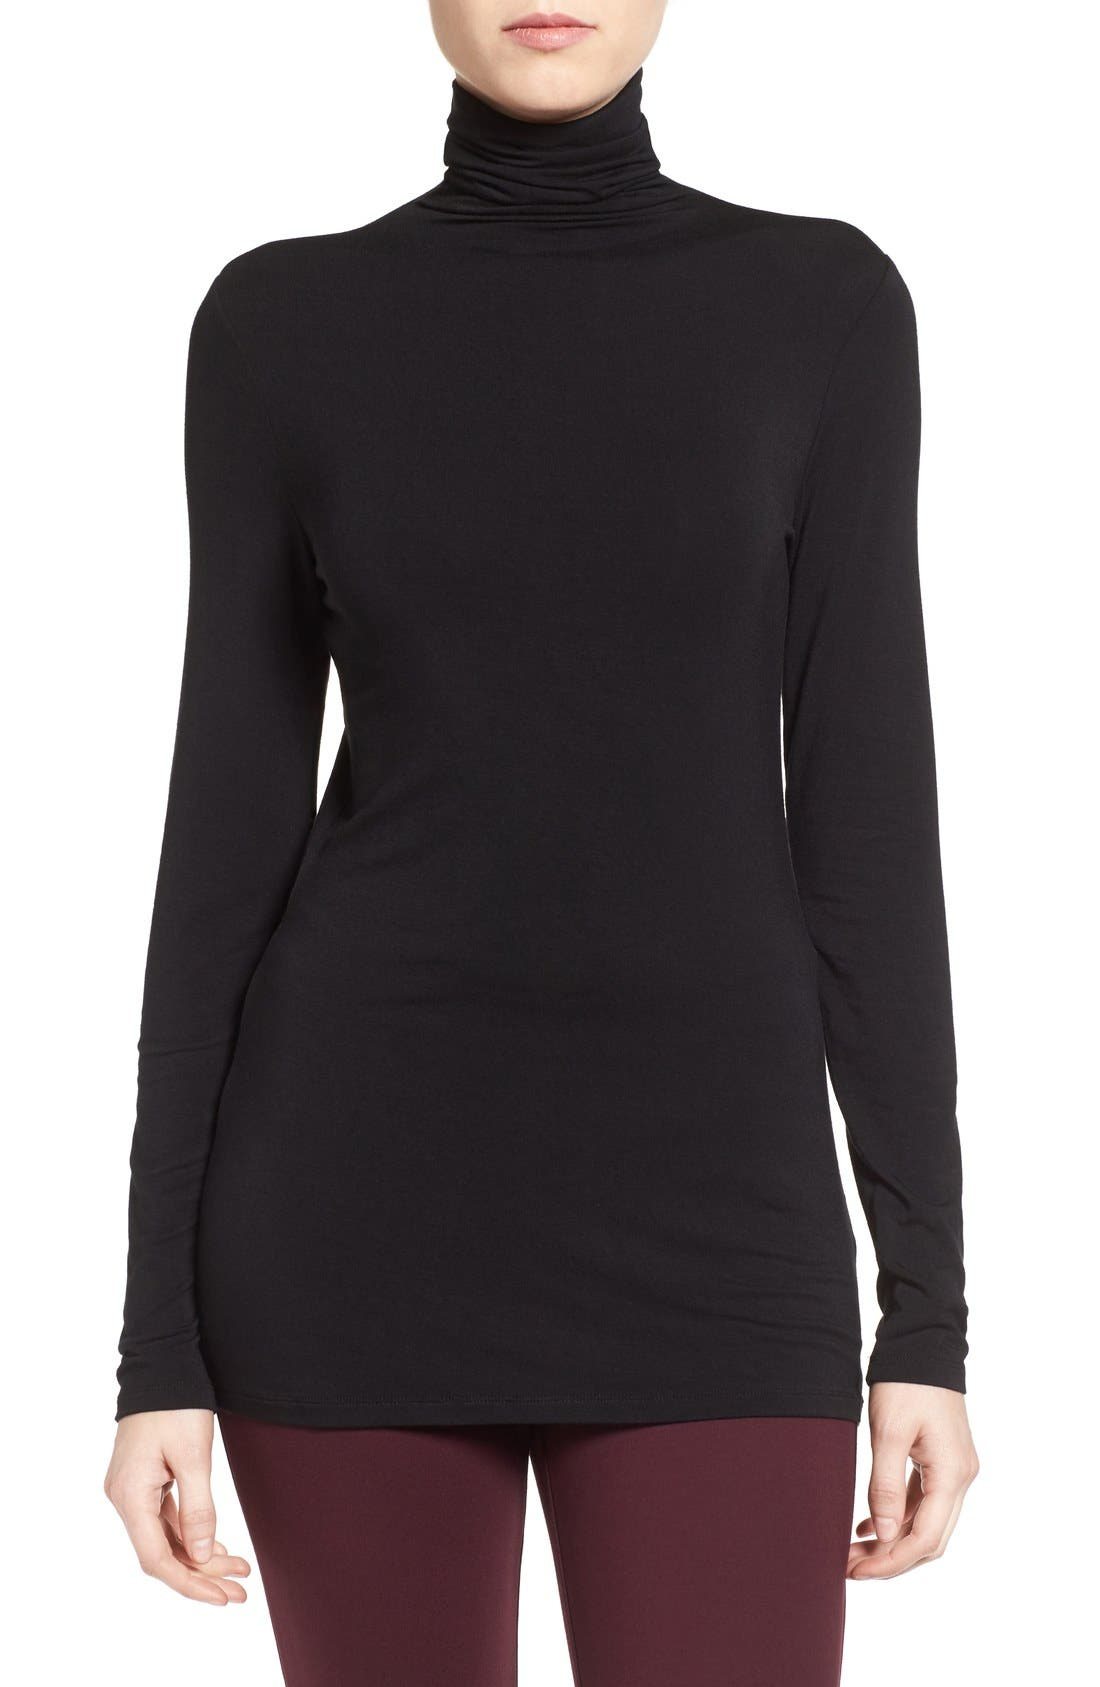 Women's Black Turtleneck Tops & Tees | Nordstrom